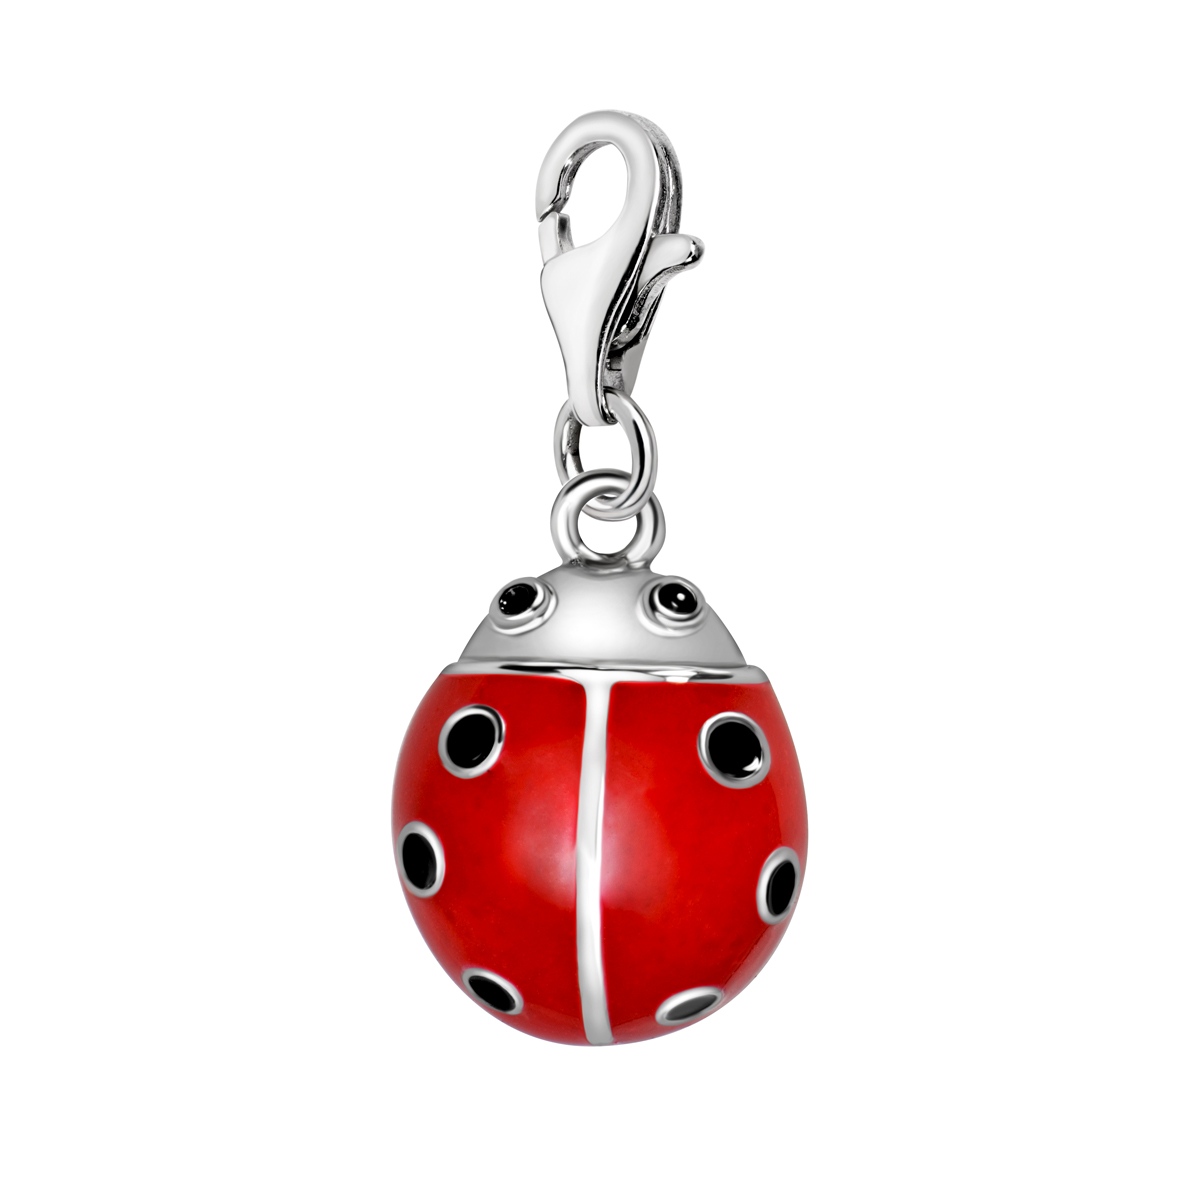 Quiges 925 Sterling Silver Red Enamel 3D Insect Ladybug Clip On Charm Pendant